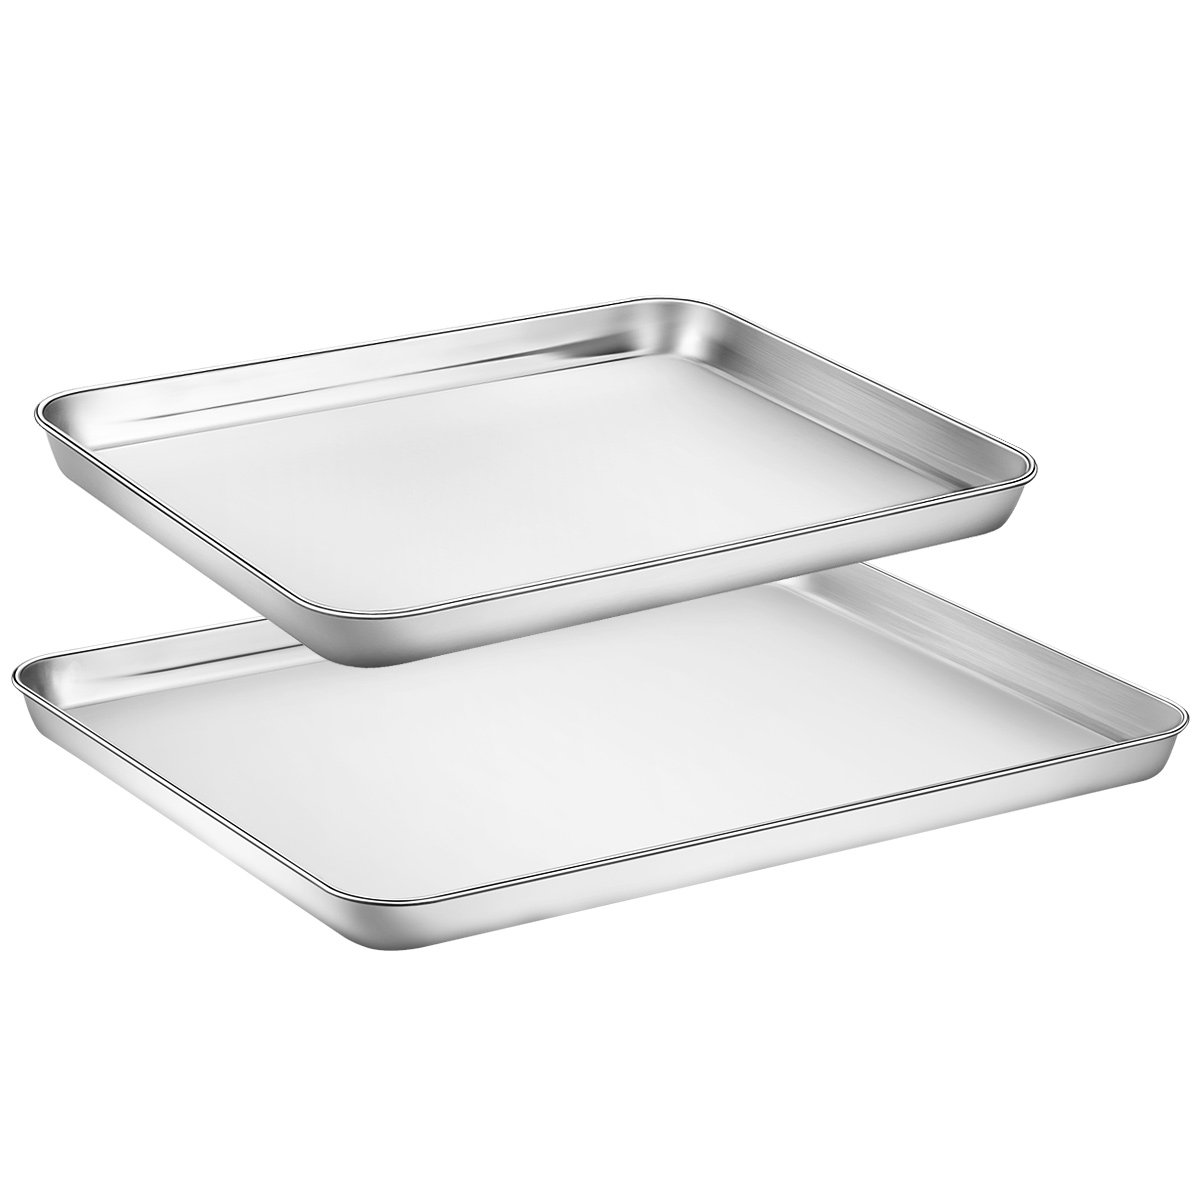 Baking Sheet Set of 2, Zacfton Cookie Sheet Set & Baking Pan 2 Pieces Stainless Steel & Rectangle Size Non Toxic & Healthy,Superior Mirror Finish & Easy Clean, Dishwasher Safe